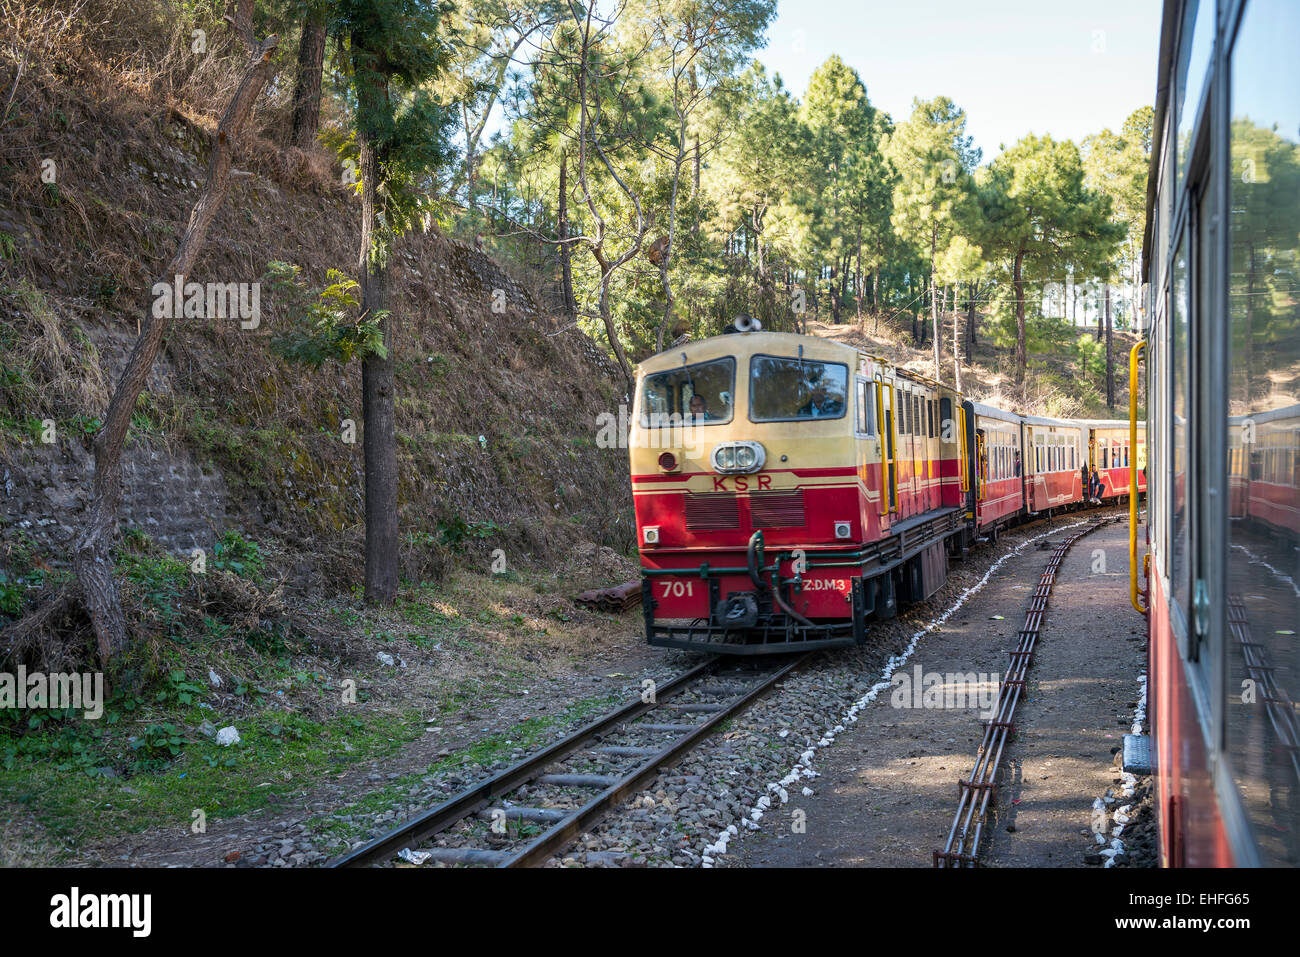 The narrow gauge Kalka-Shimla train winding down through the Himalayan foothills in India - Stock Image